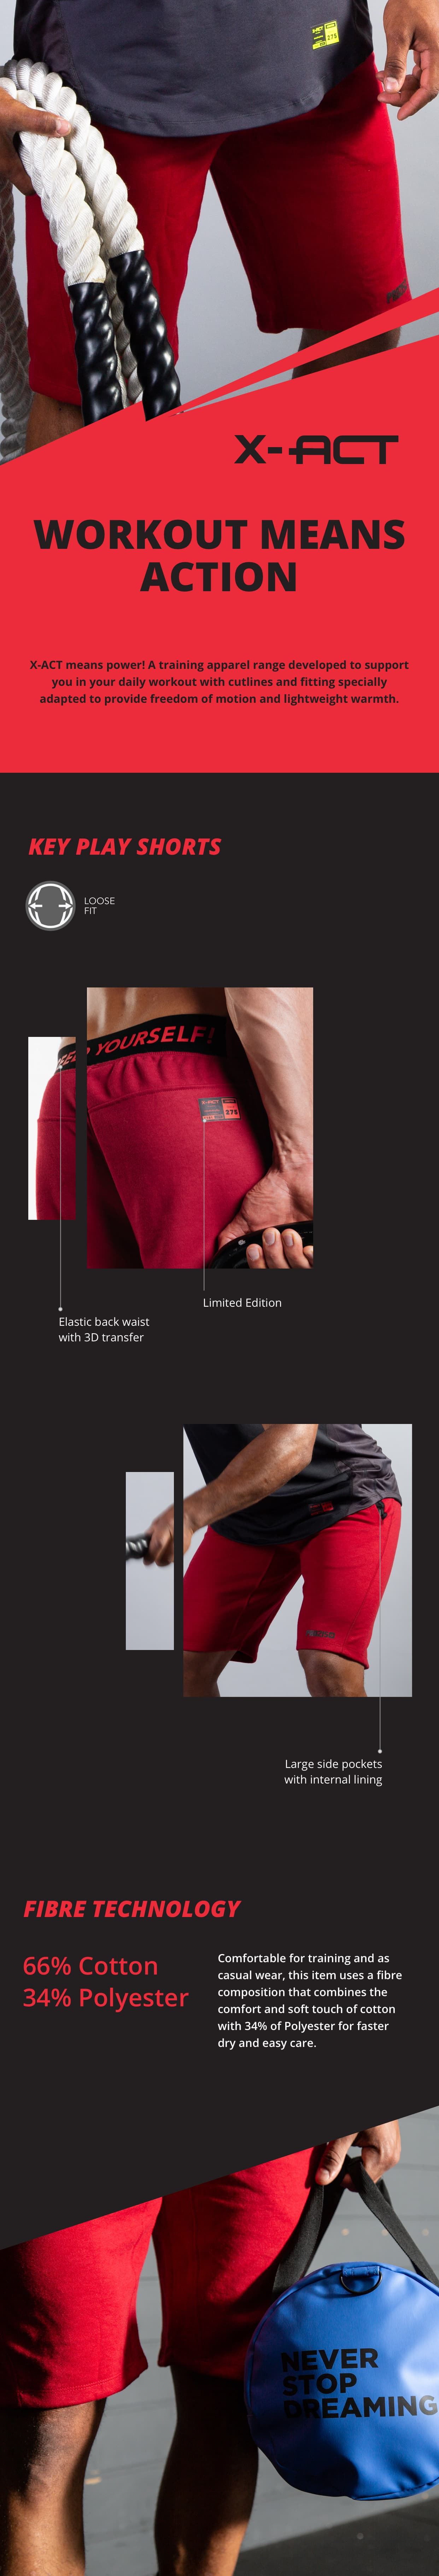 X Act - KeyPlay Shorts Red - description